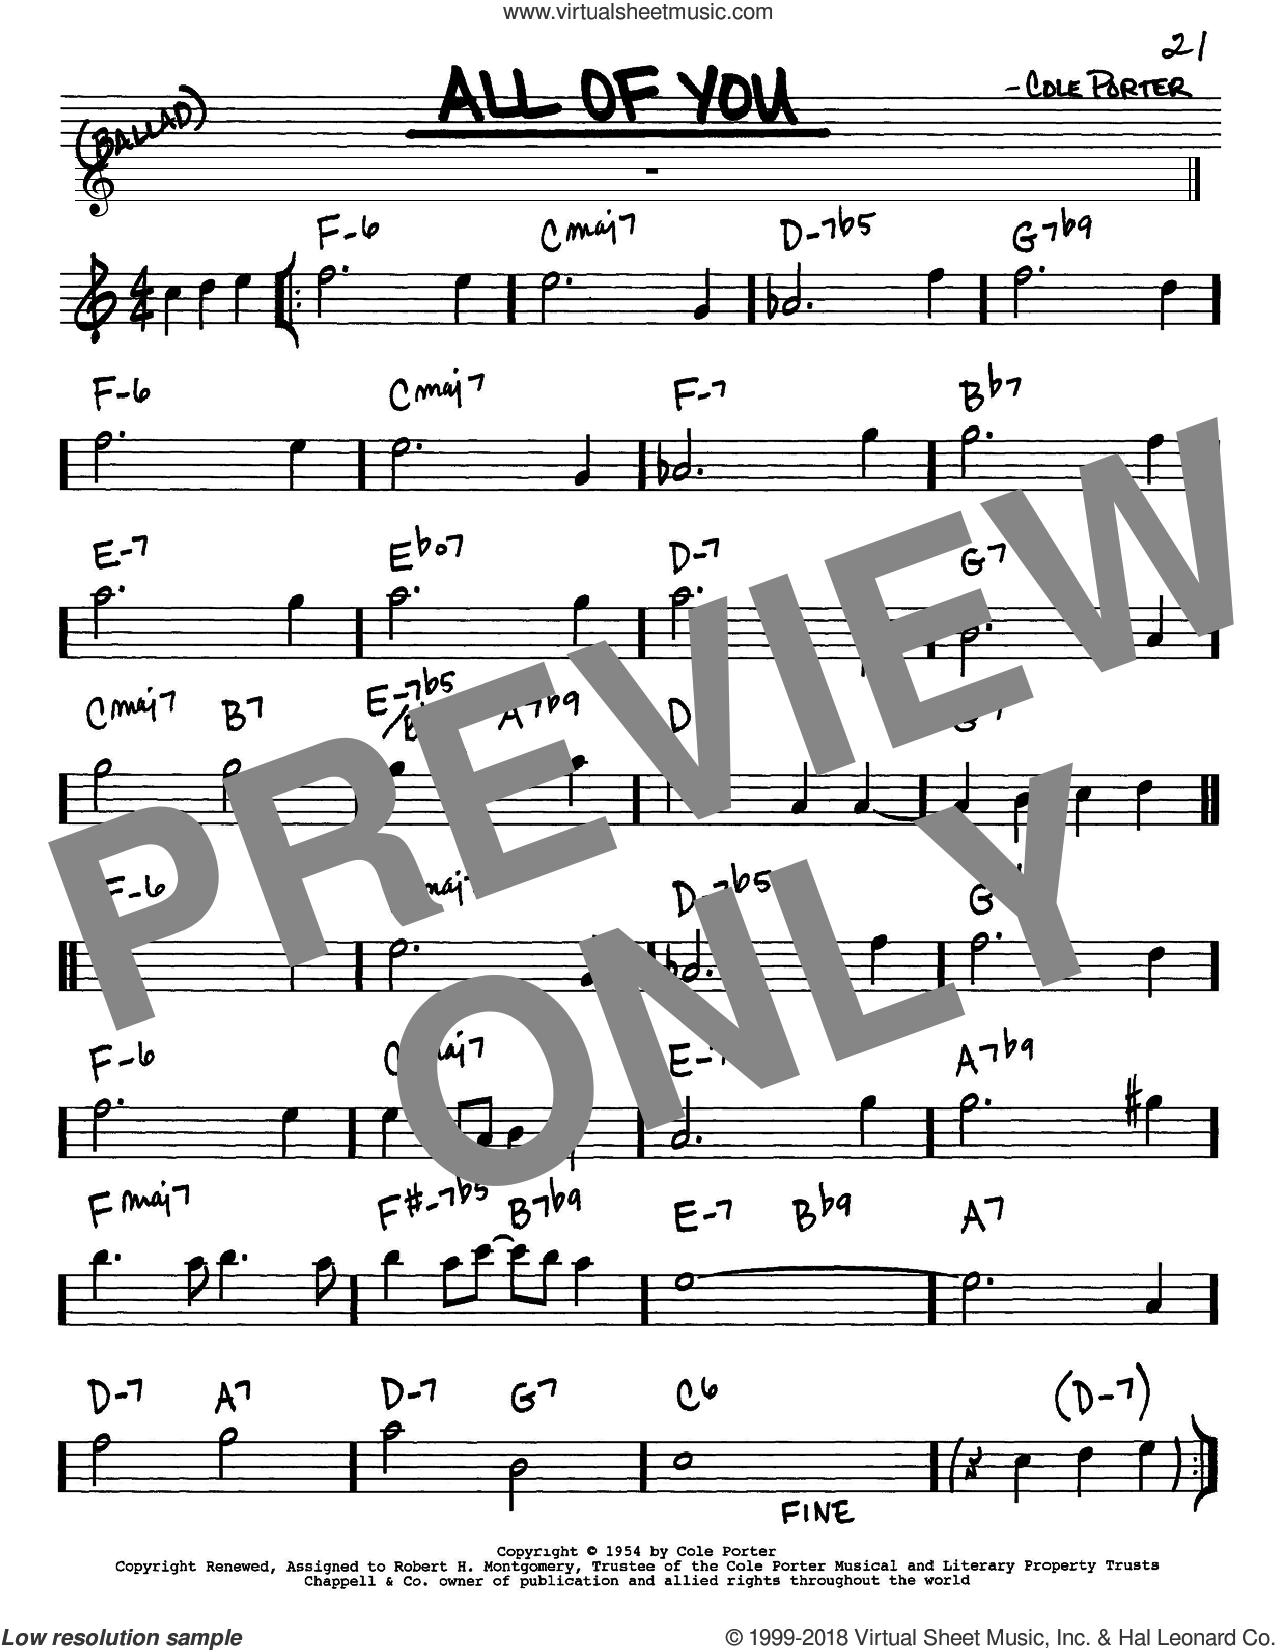 All Of You sheet music for voice and other instruments (Eb) by Cole Porter. Score Image Preview.